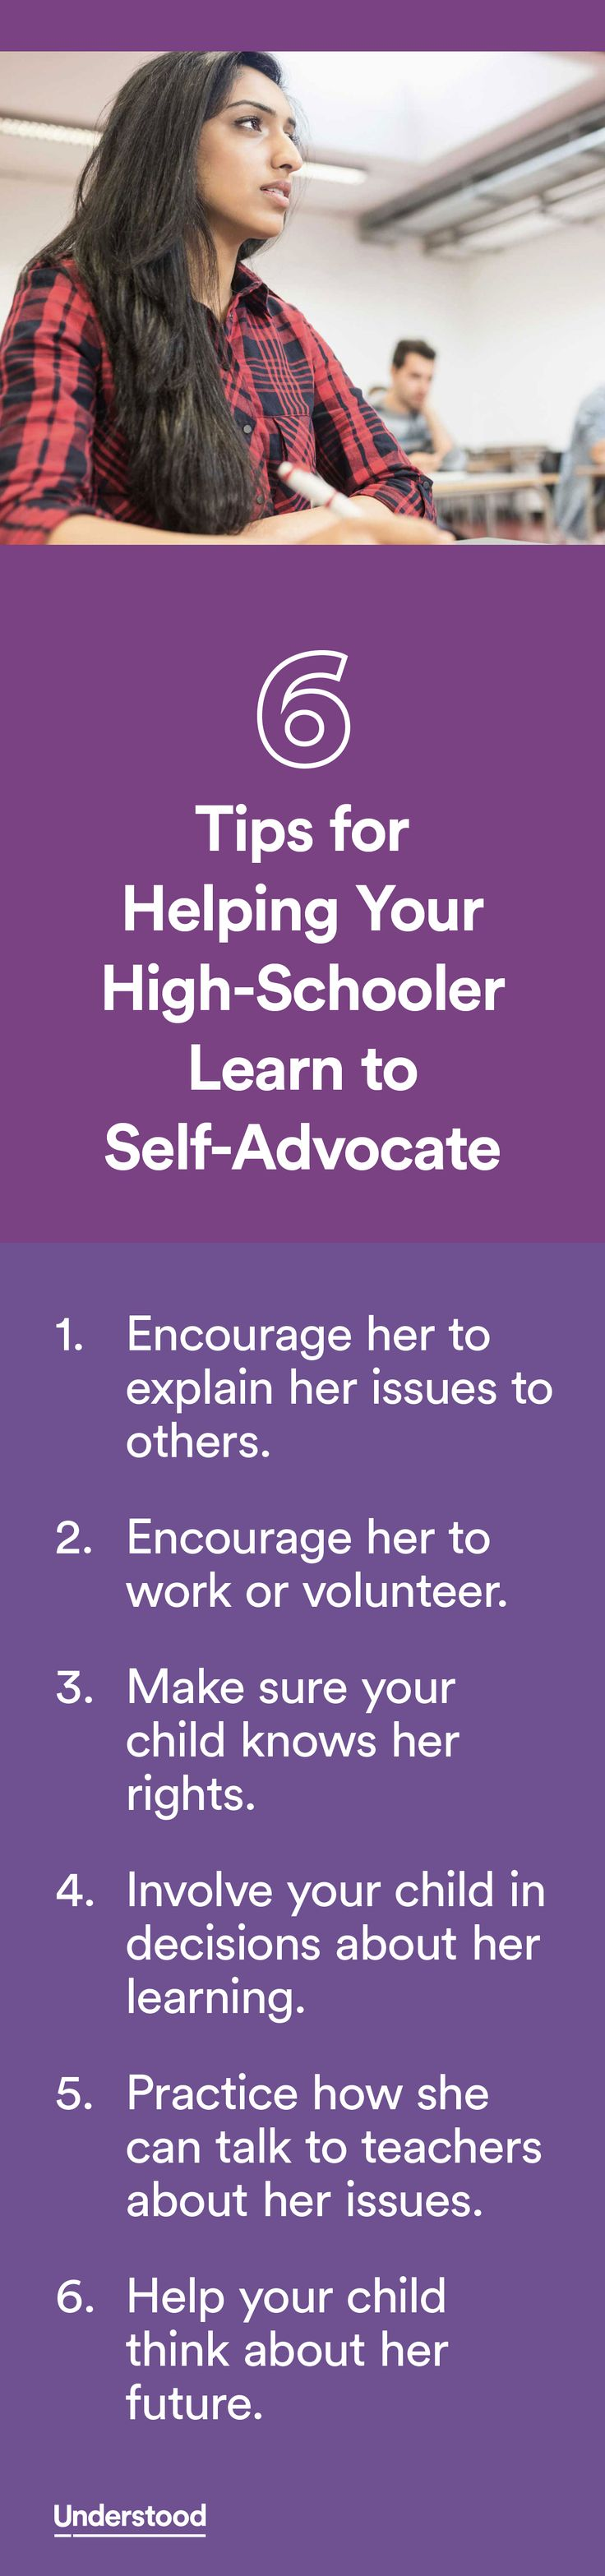 High school can presentchallenges for kids with learning and attention issues. That's true both academically and socially. It's important that your child be able toself-advocatein those situations.